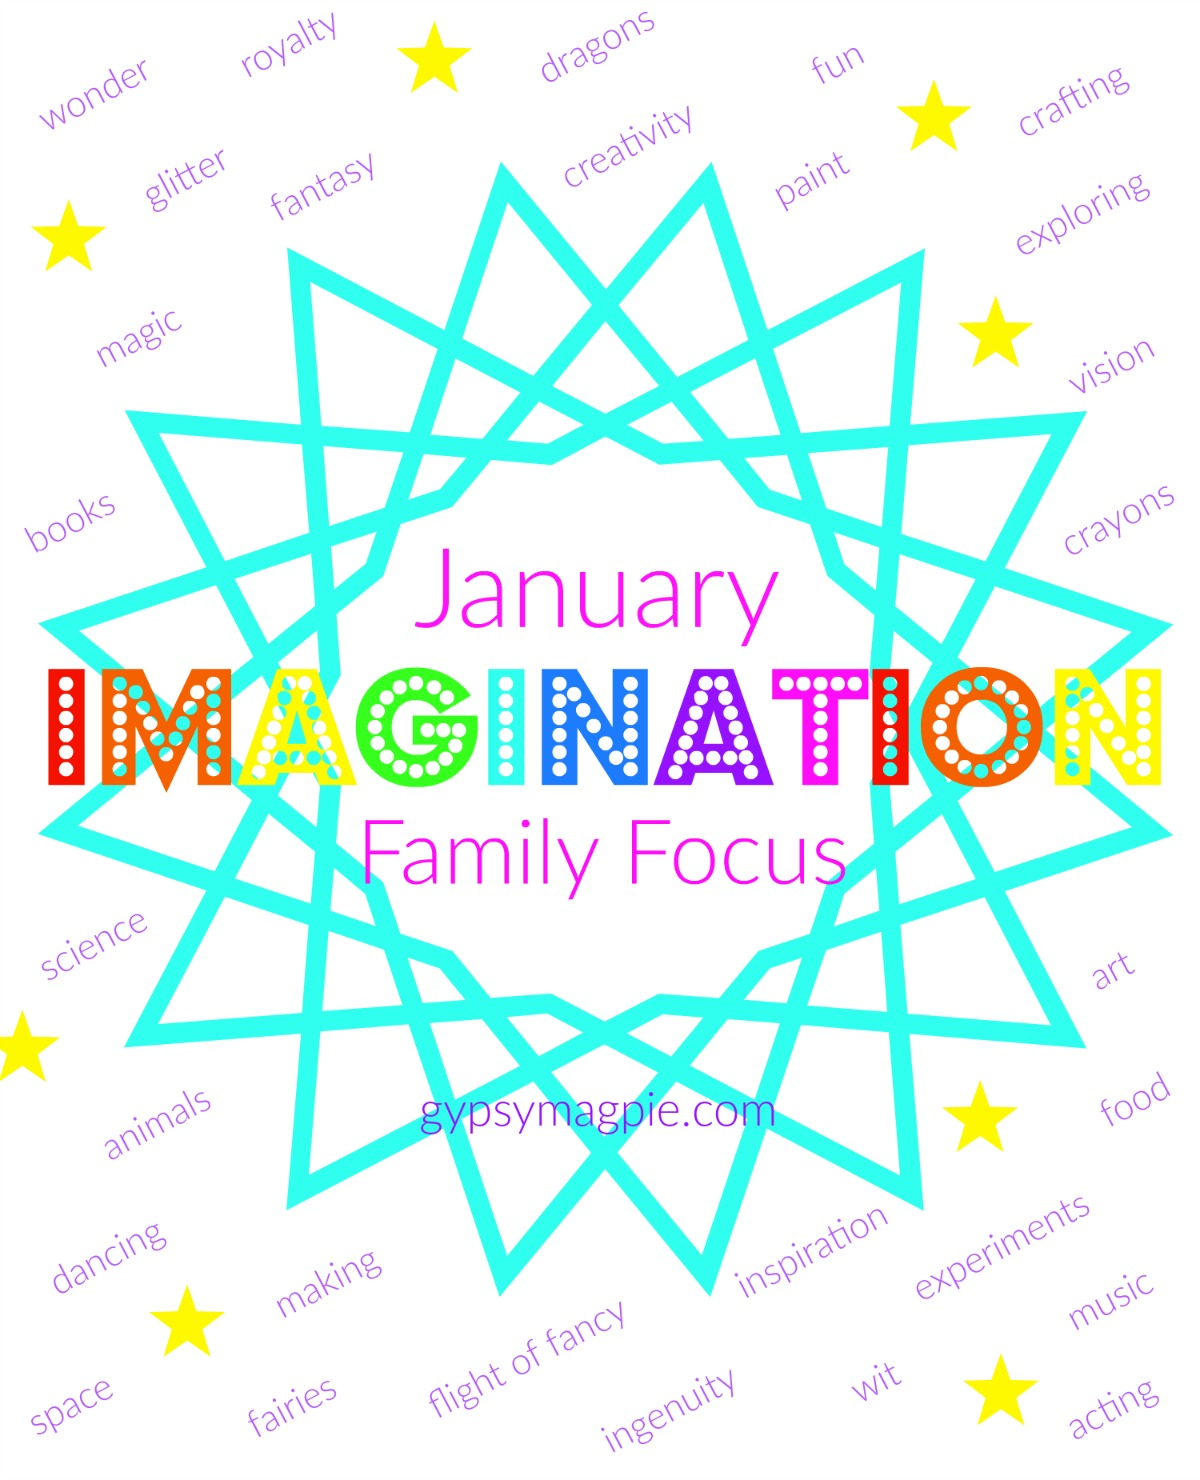 Join us as we focus on IMAGINATION this month on gypsymagpie.com!